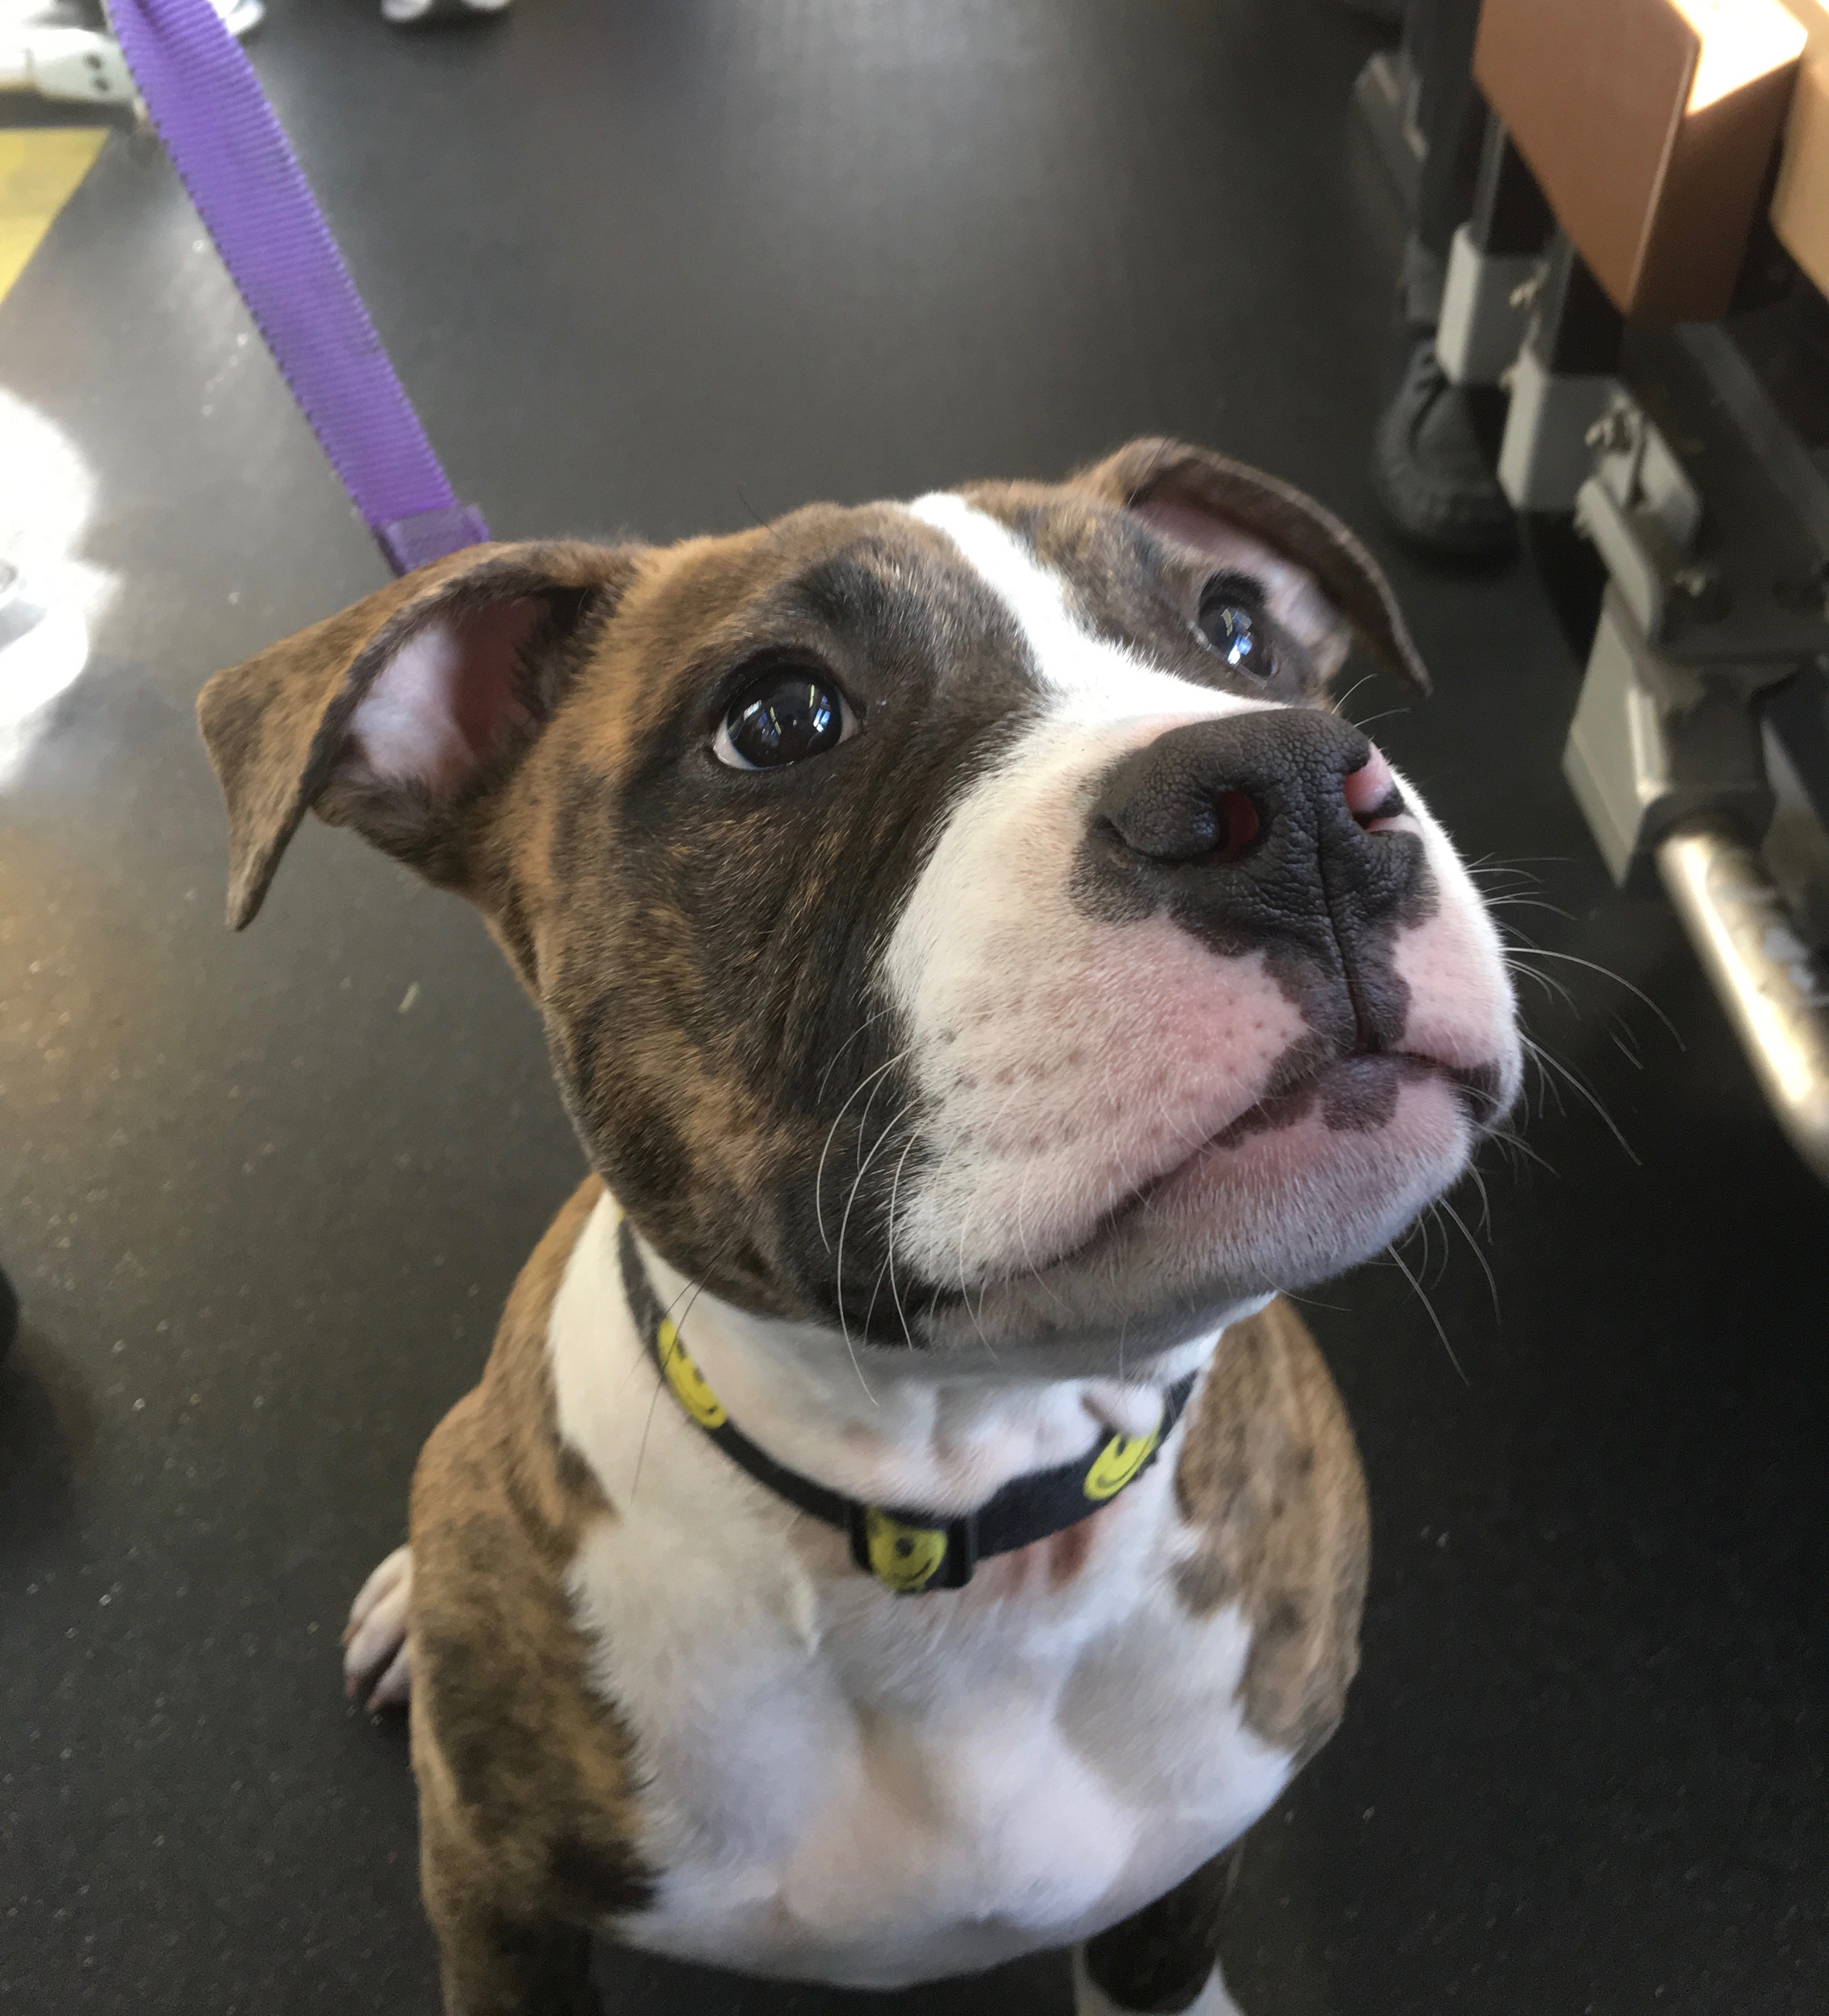 Pit Bull Mix Puppy With Puppydog Eyes From Hell